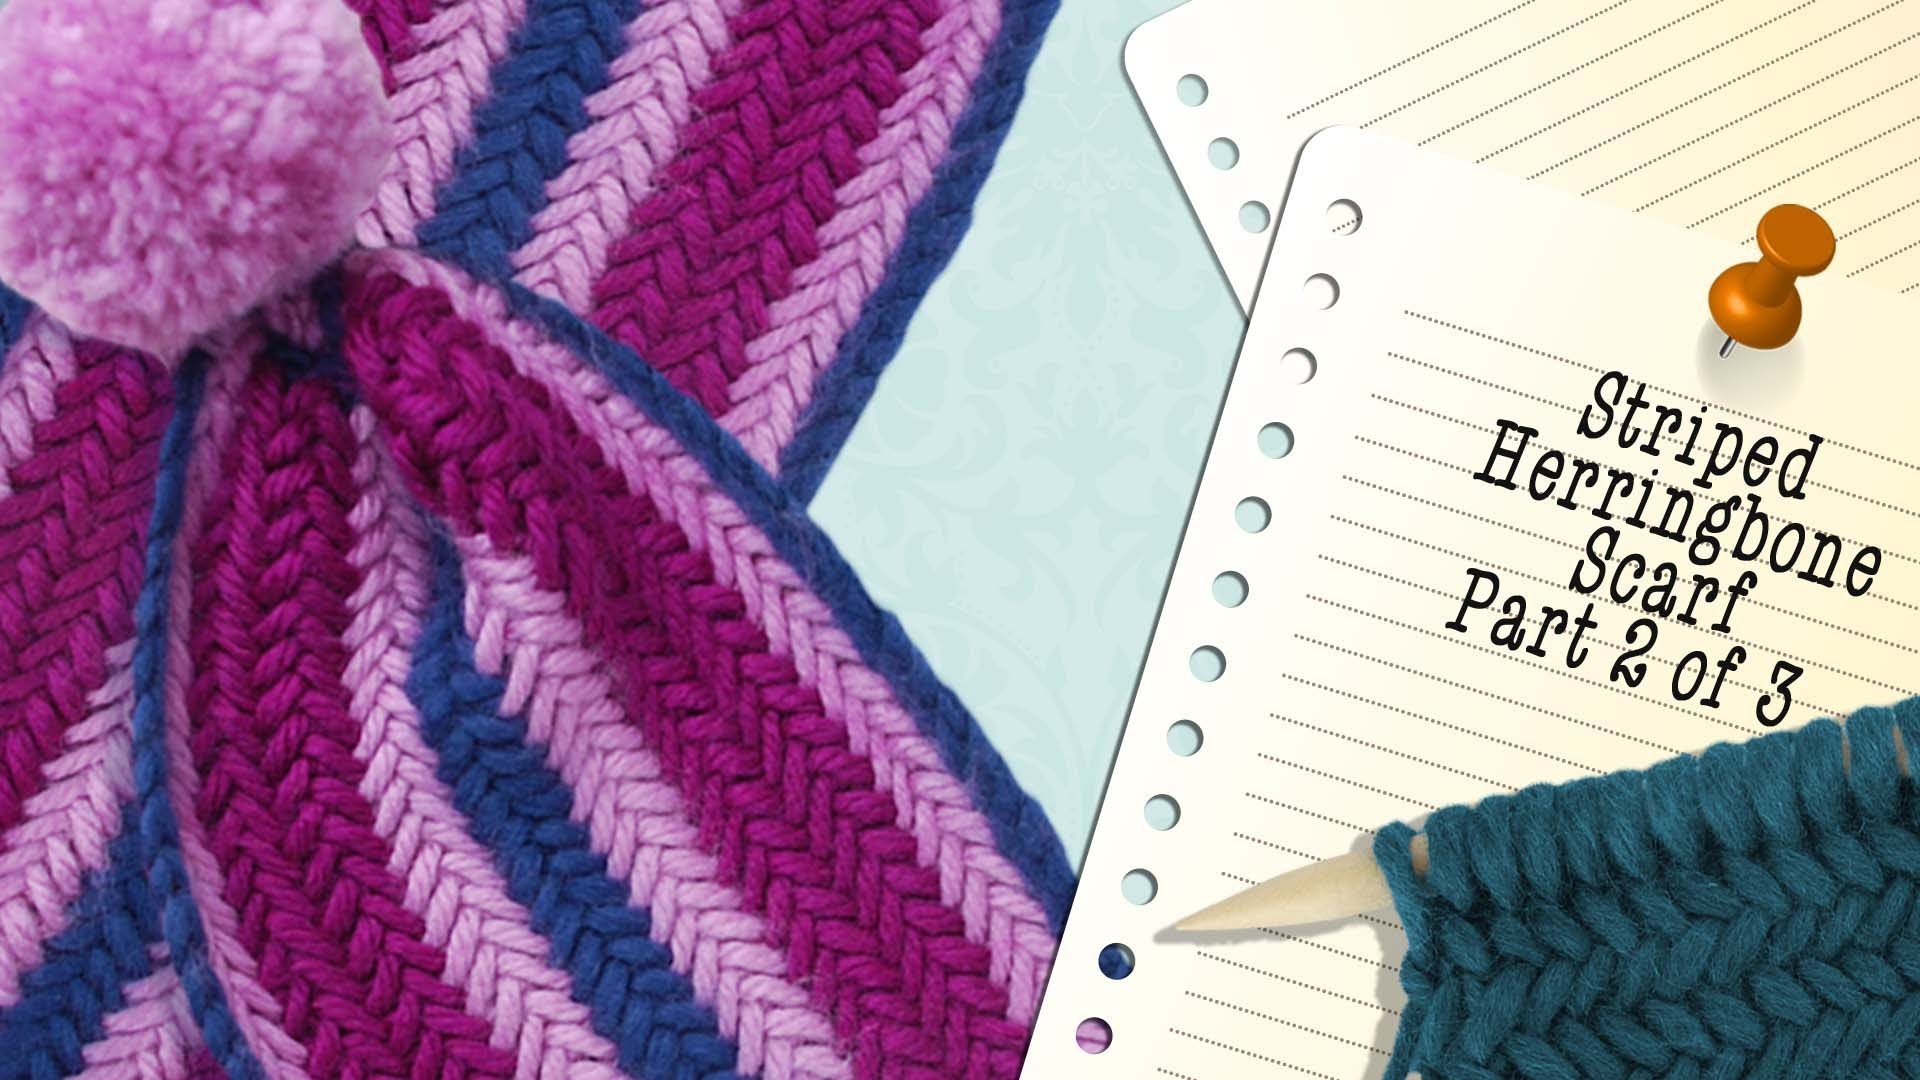 HERRINGBONE STRIPED SCARF - Part 2 of 3 video knitting projects by The Casting On Couch